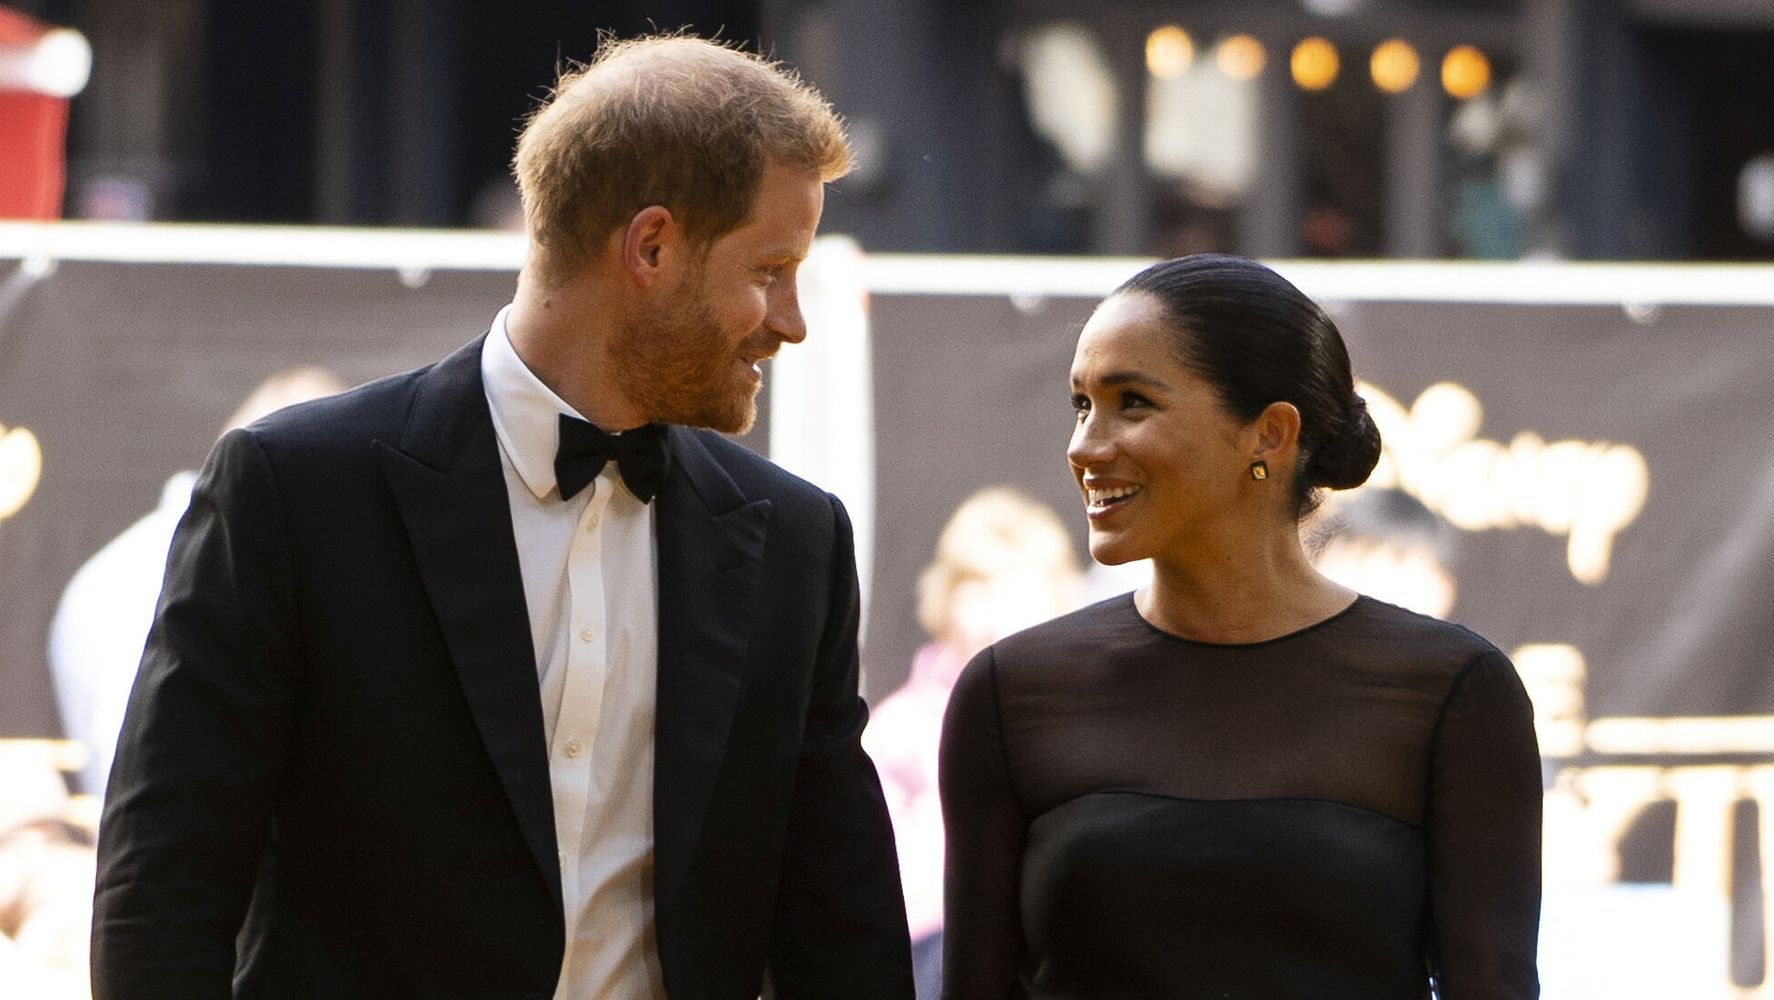 Meghan Markle Honours Prince Harry's Birthday With Previously Unseen Archie Photo